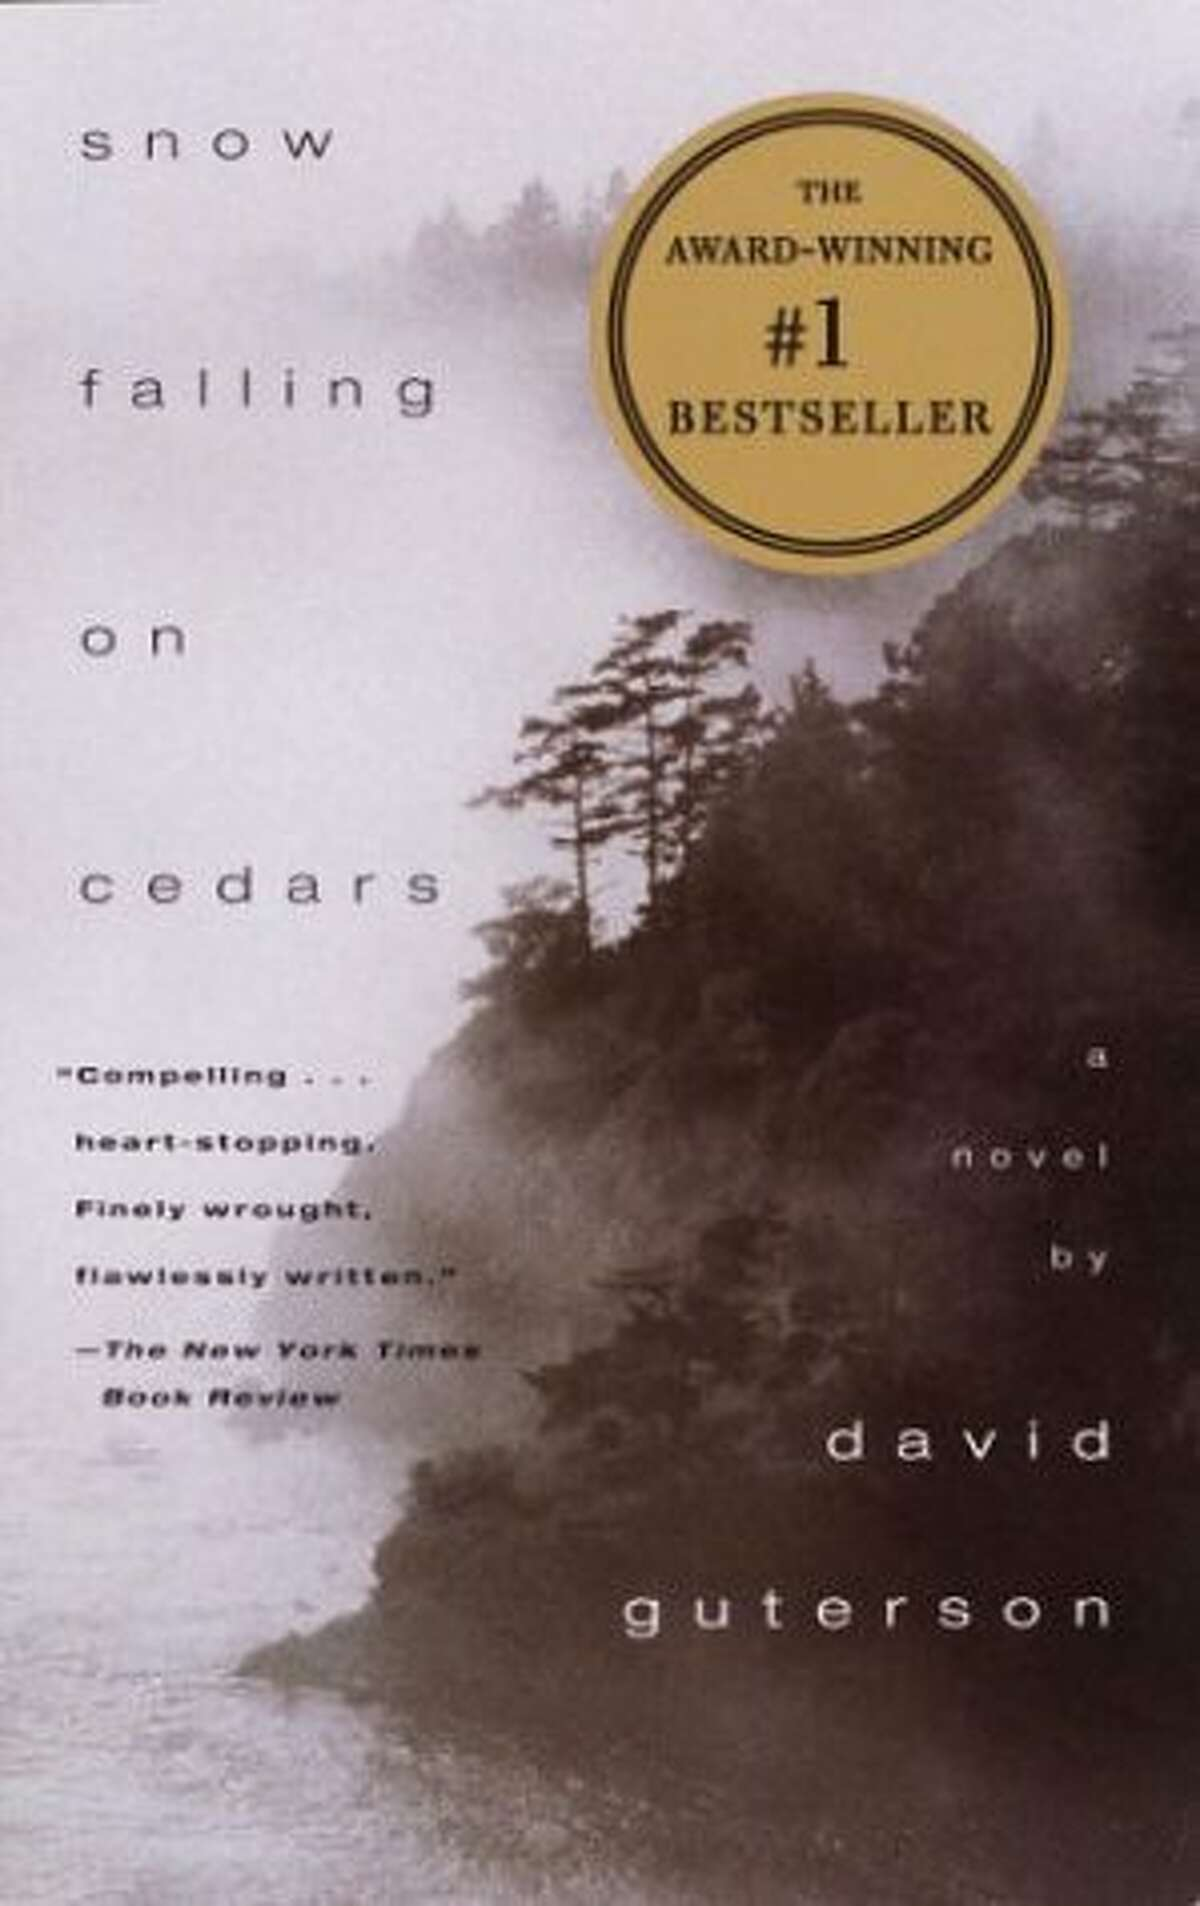 Snow Falling on Cedars This 1994 award-winning novel by Seattle native David Guterson was set in the fictional northern Puget Sound locale of San Piedro Island. The plot, set in 1954, centers on a murder case in which a Japanese American is accused of killing a respected fisherman in a close-knit community. The book was adapted into a 1999 film starring Ethan Hawke that received an Oscar nod for best cinematography.